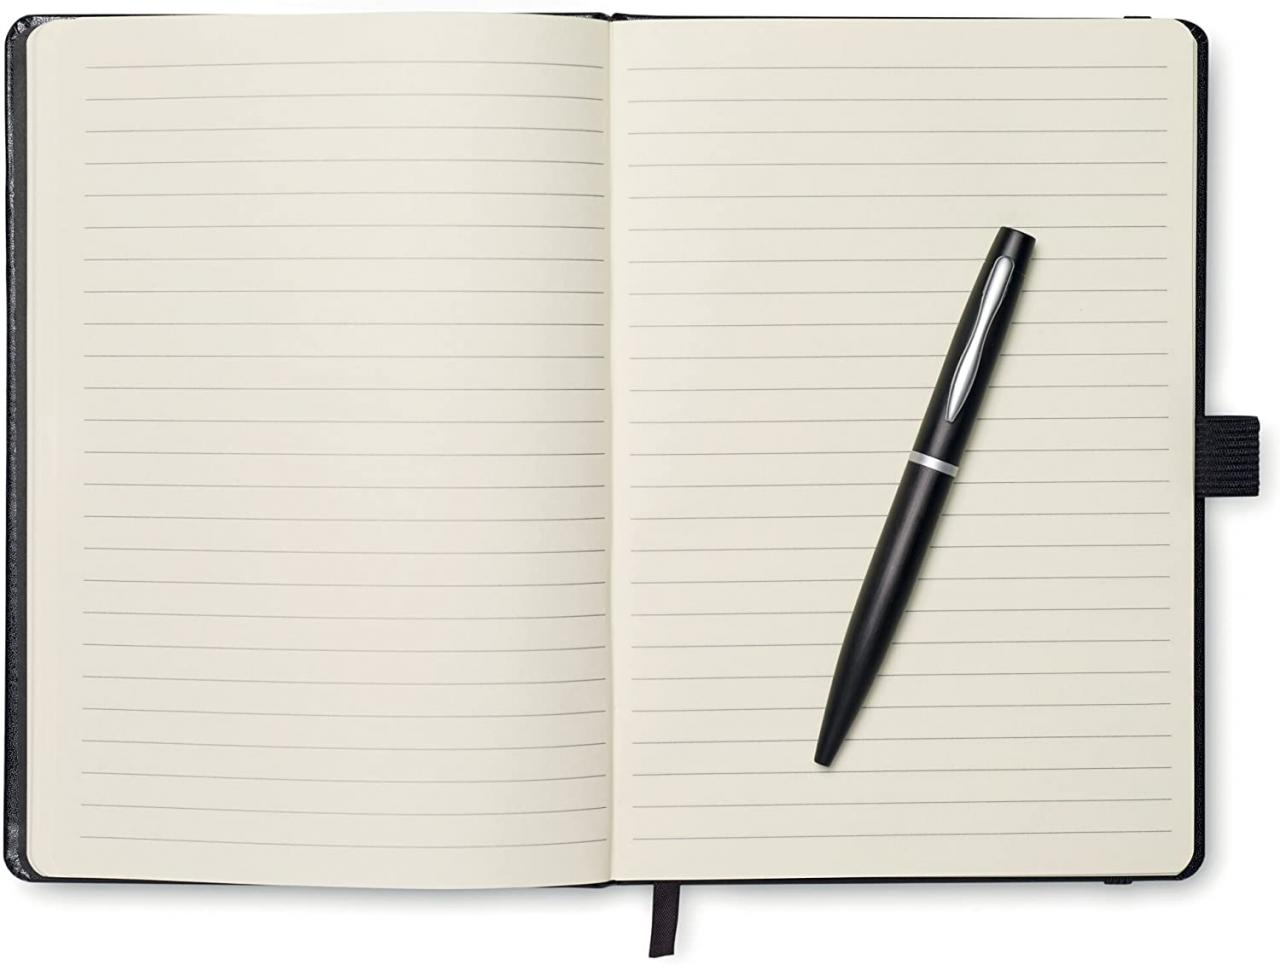 A5 Notebook with Pen - Black: Amazon.co.uk: Office Products